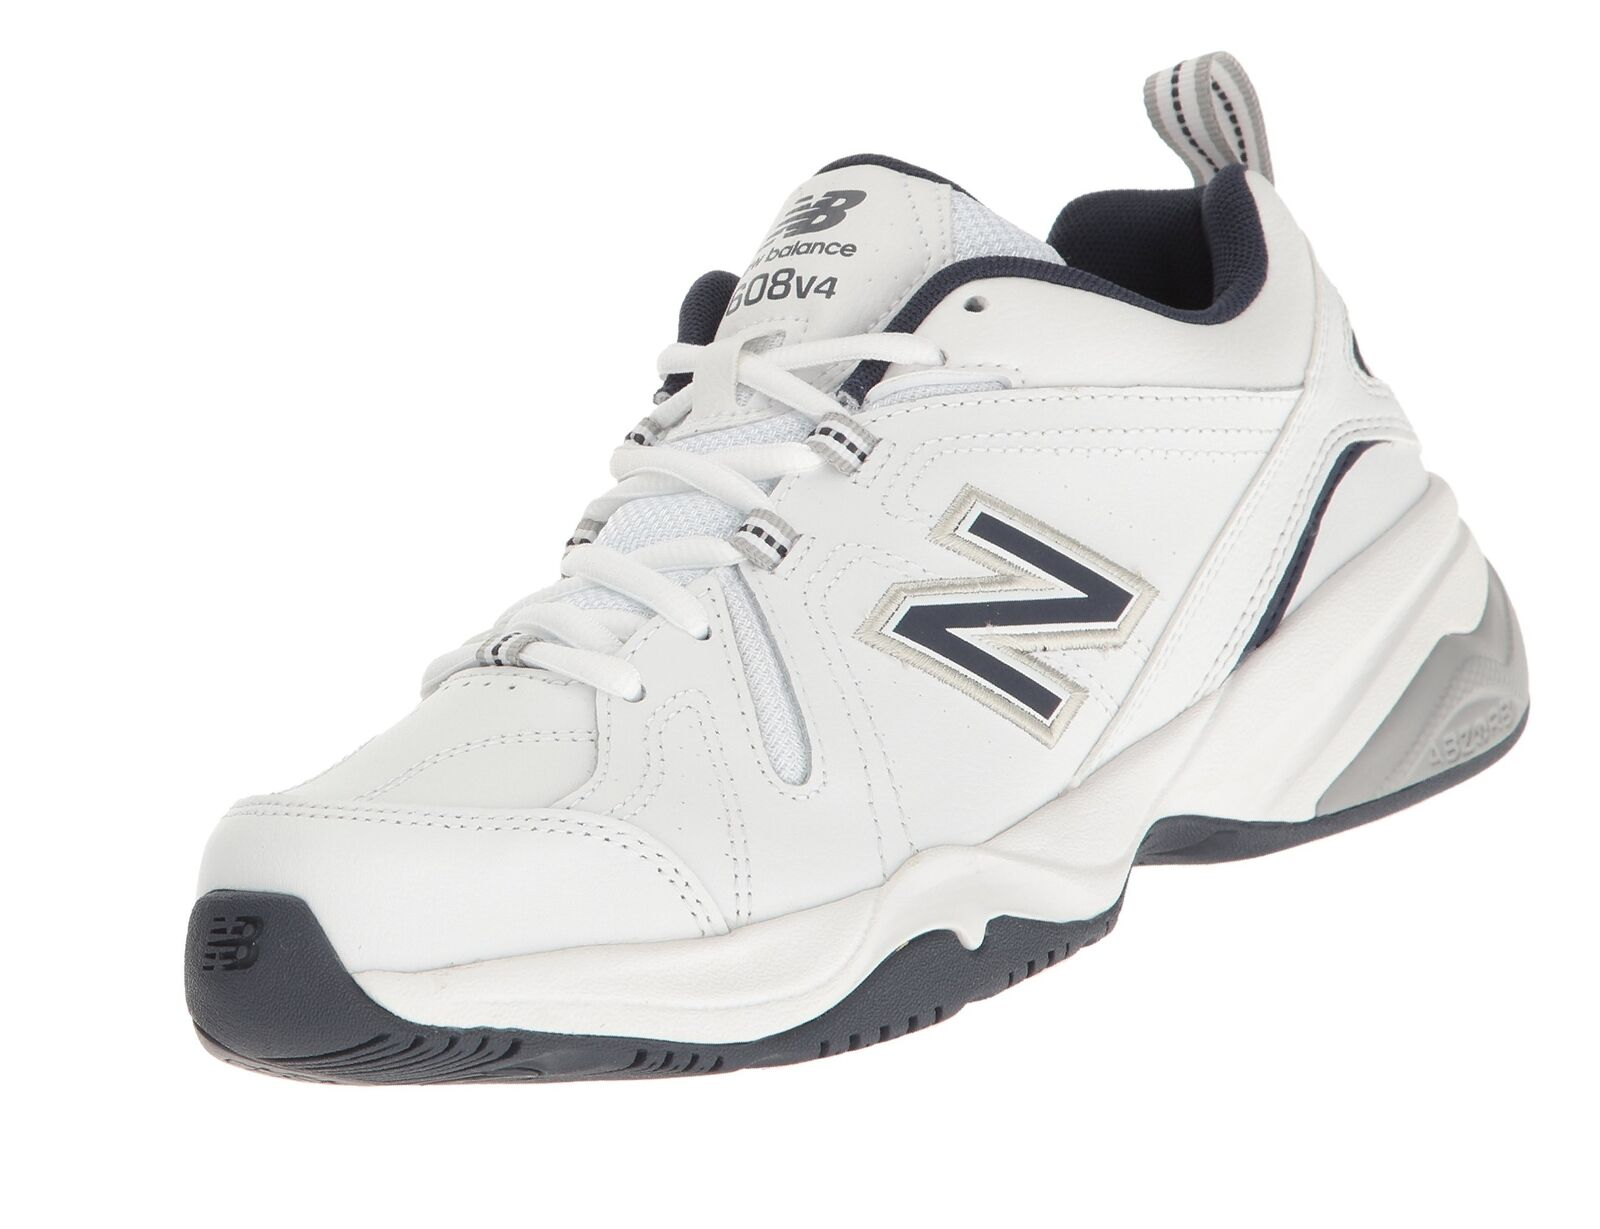 d8501da44bd New Balance Mx608v4 White M US 10 Men's nombki3798-new shoes ...